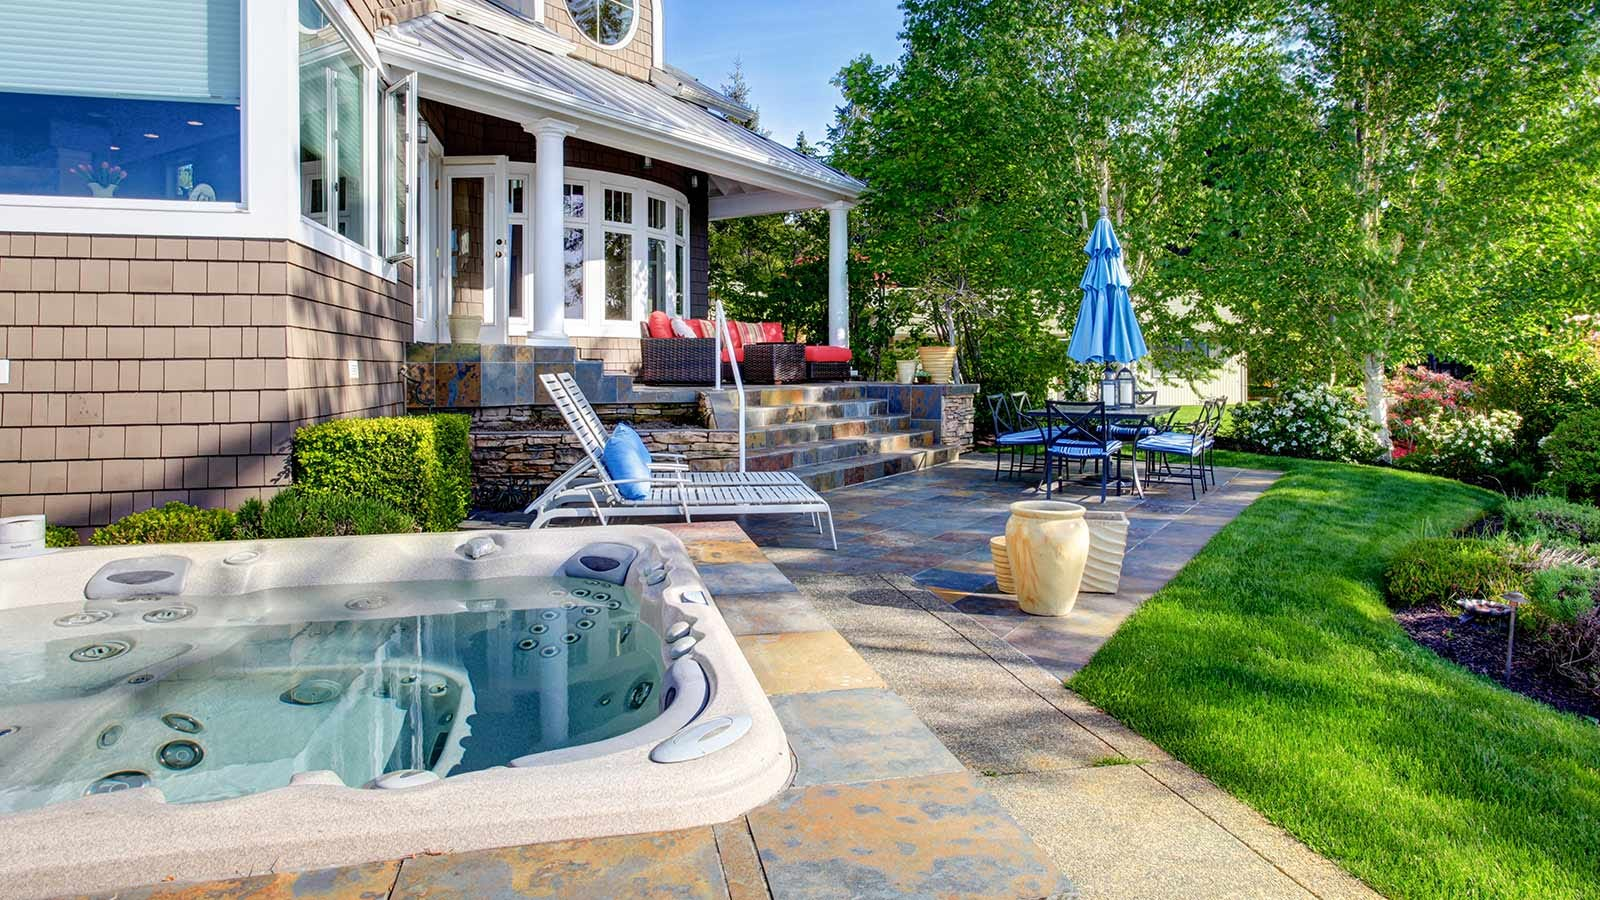 A beautiful home with outdoor furniture, nice landscaping, and a hot tub.